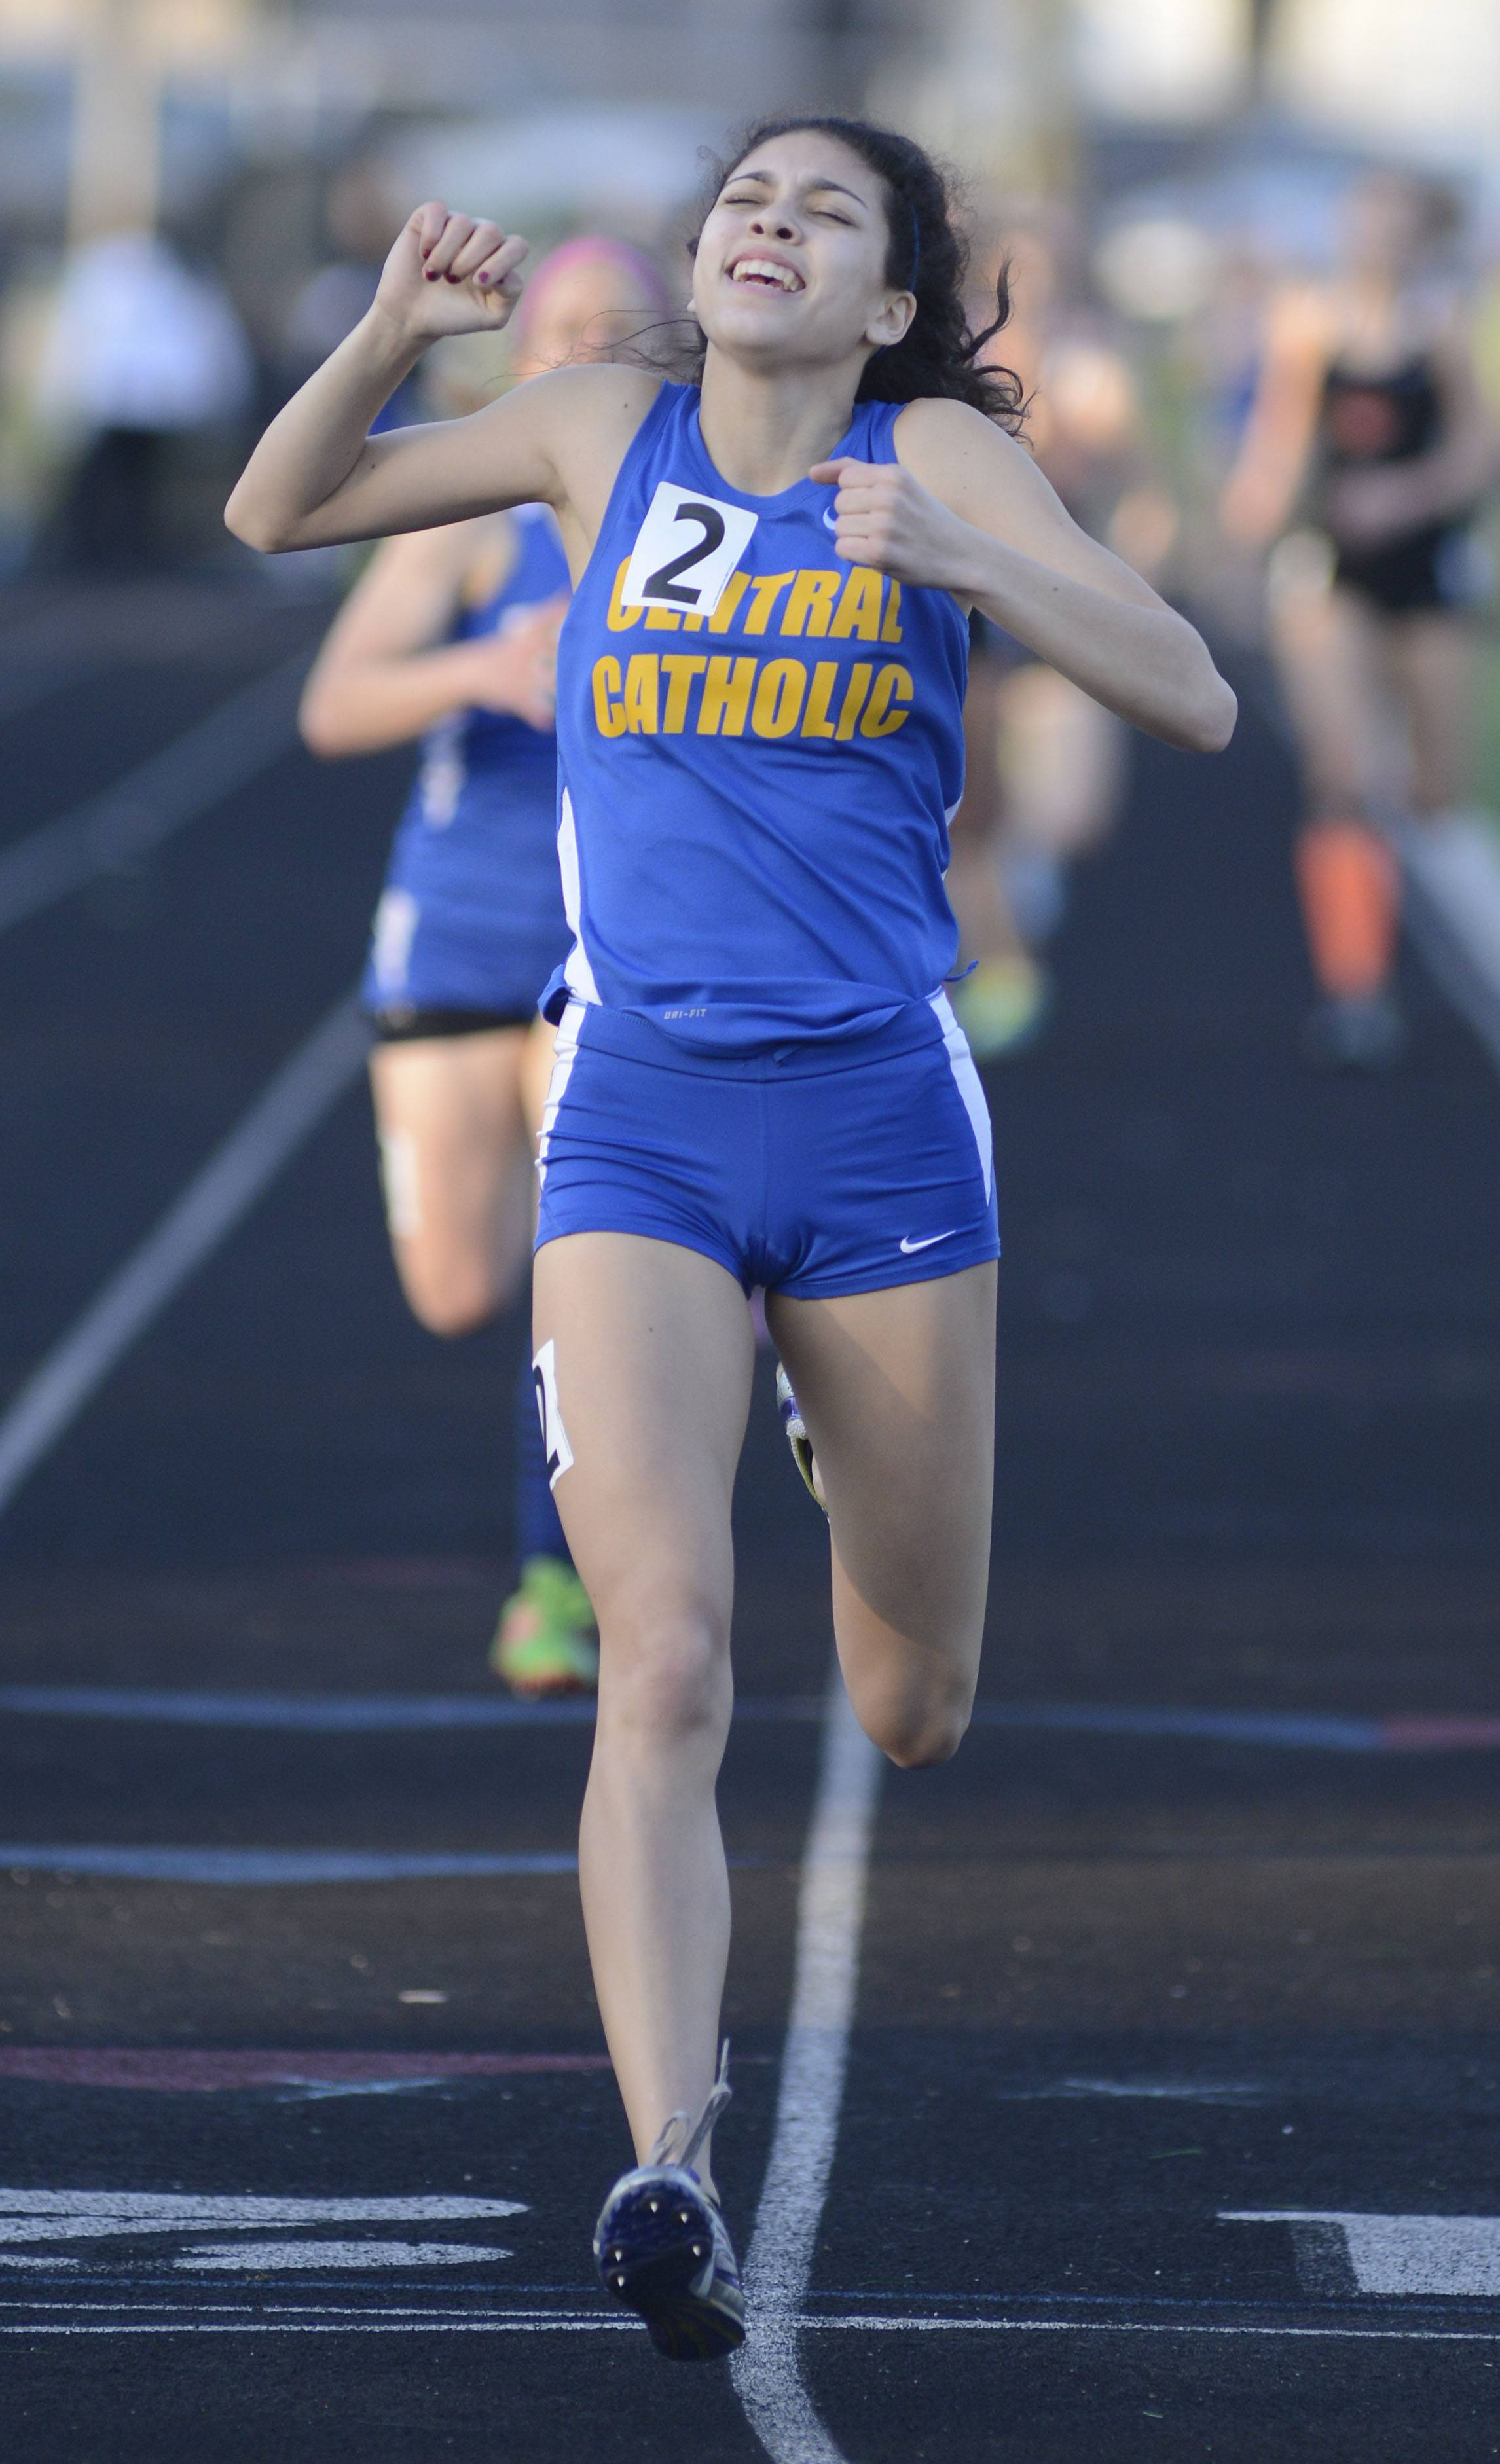 Aurora Central Catholic's Karina Liz takes first place in the final heat of the 800 meter run finals at the Kane County Invitational track in Geneva meet on Friday, April 26.